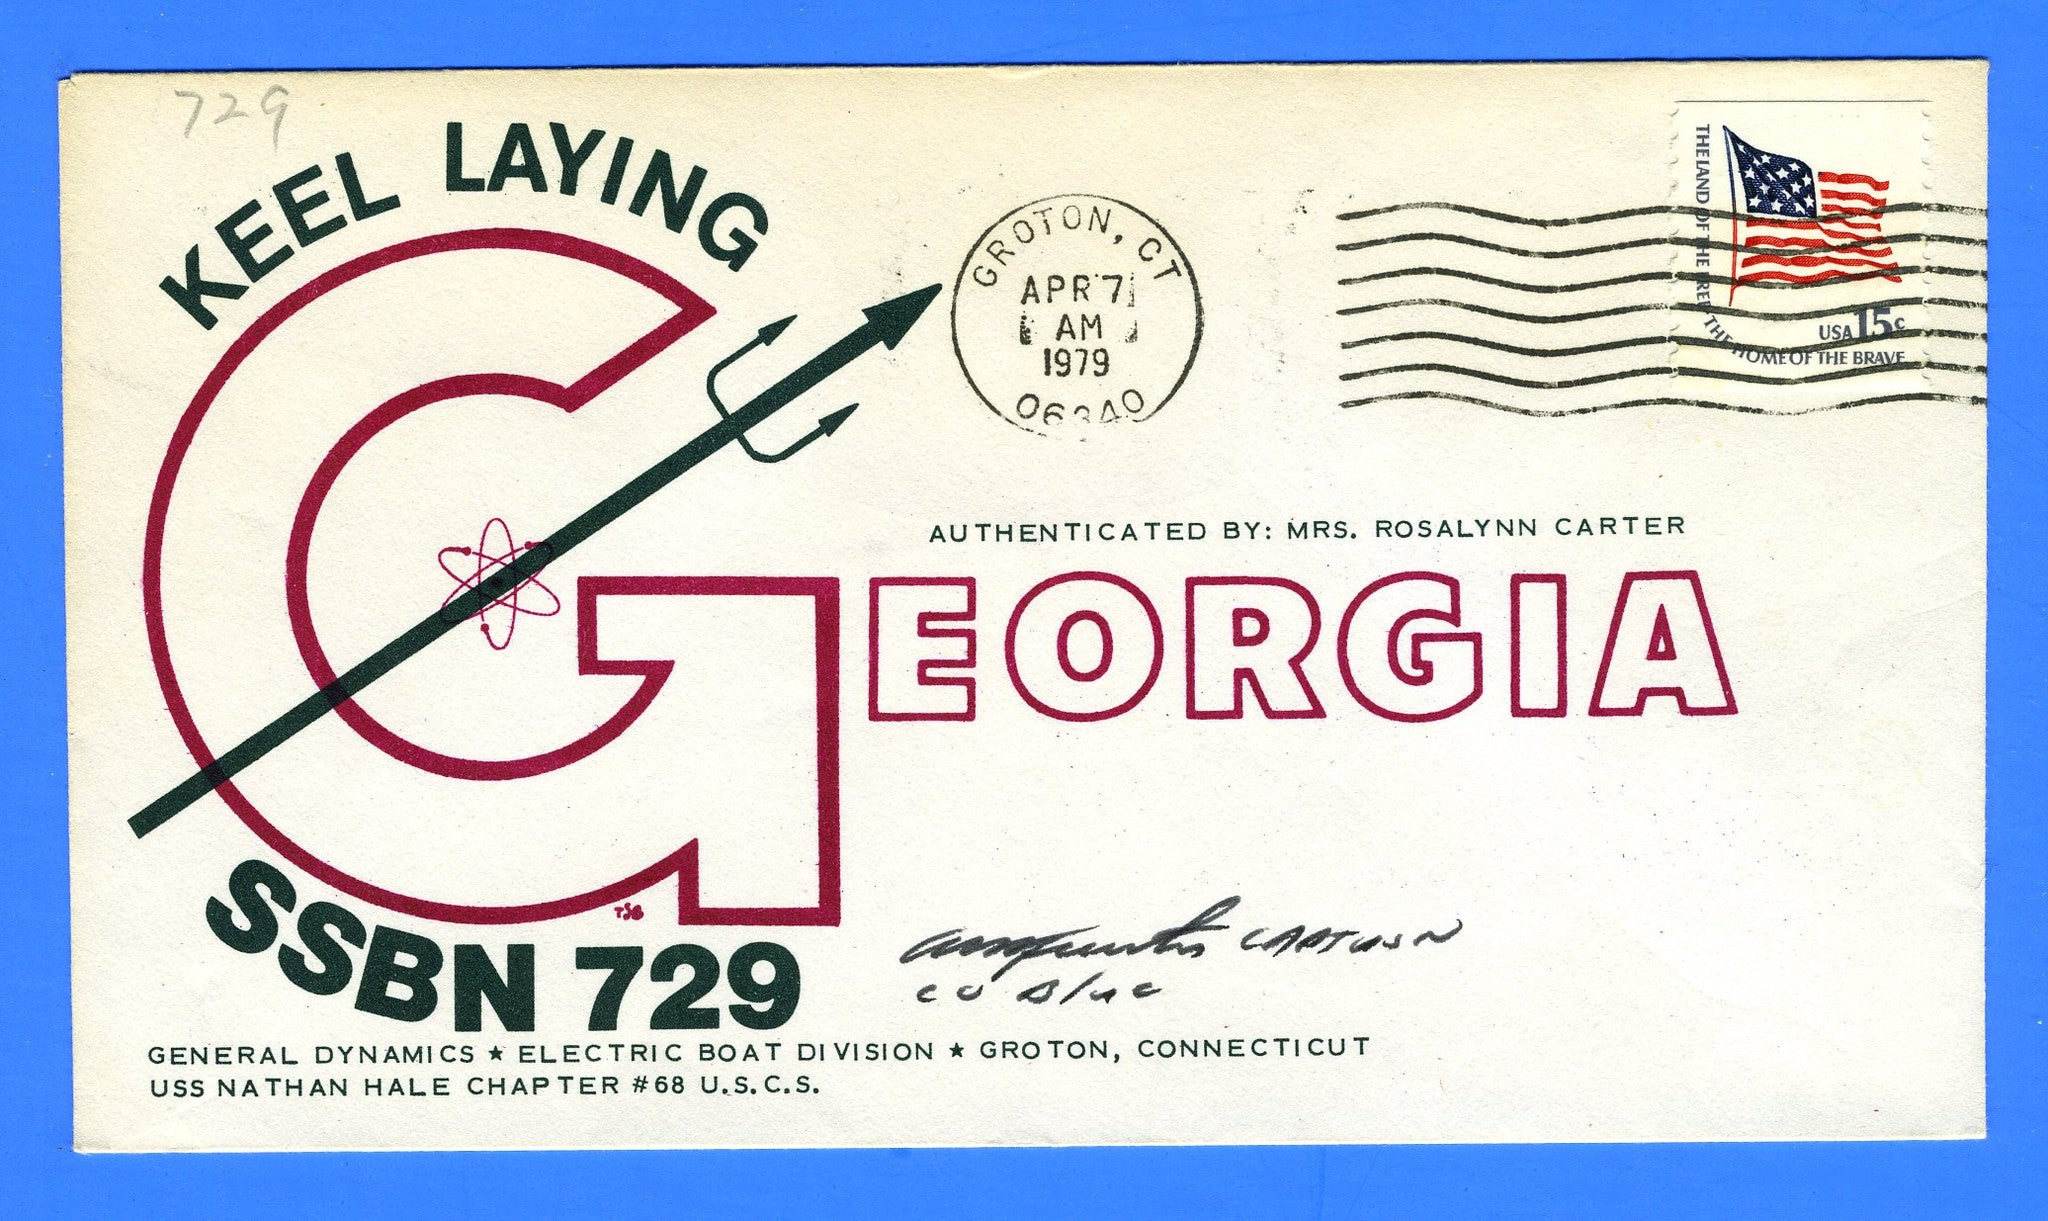 USS Georgia SSBN-729 Keel Laying April 7, 1979 - Cachet by USS Nathan Hale Chapter No. 68, USCS